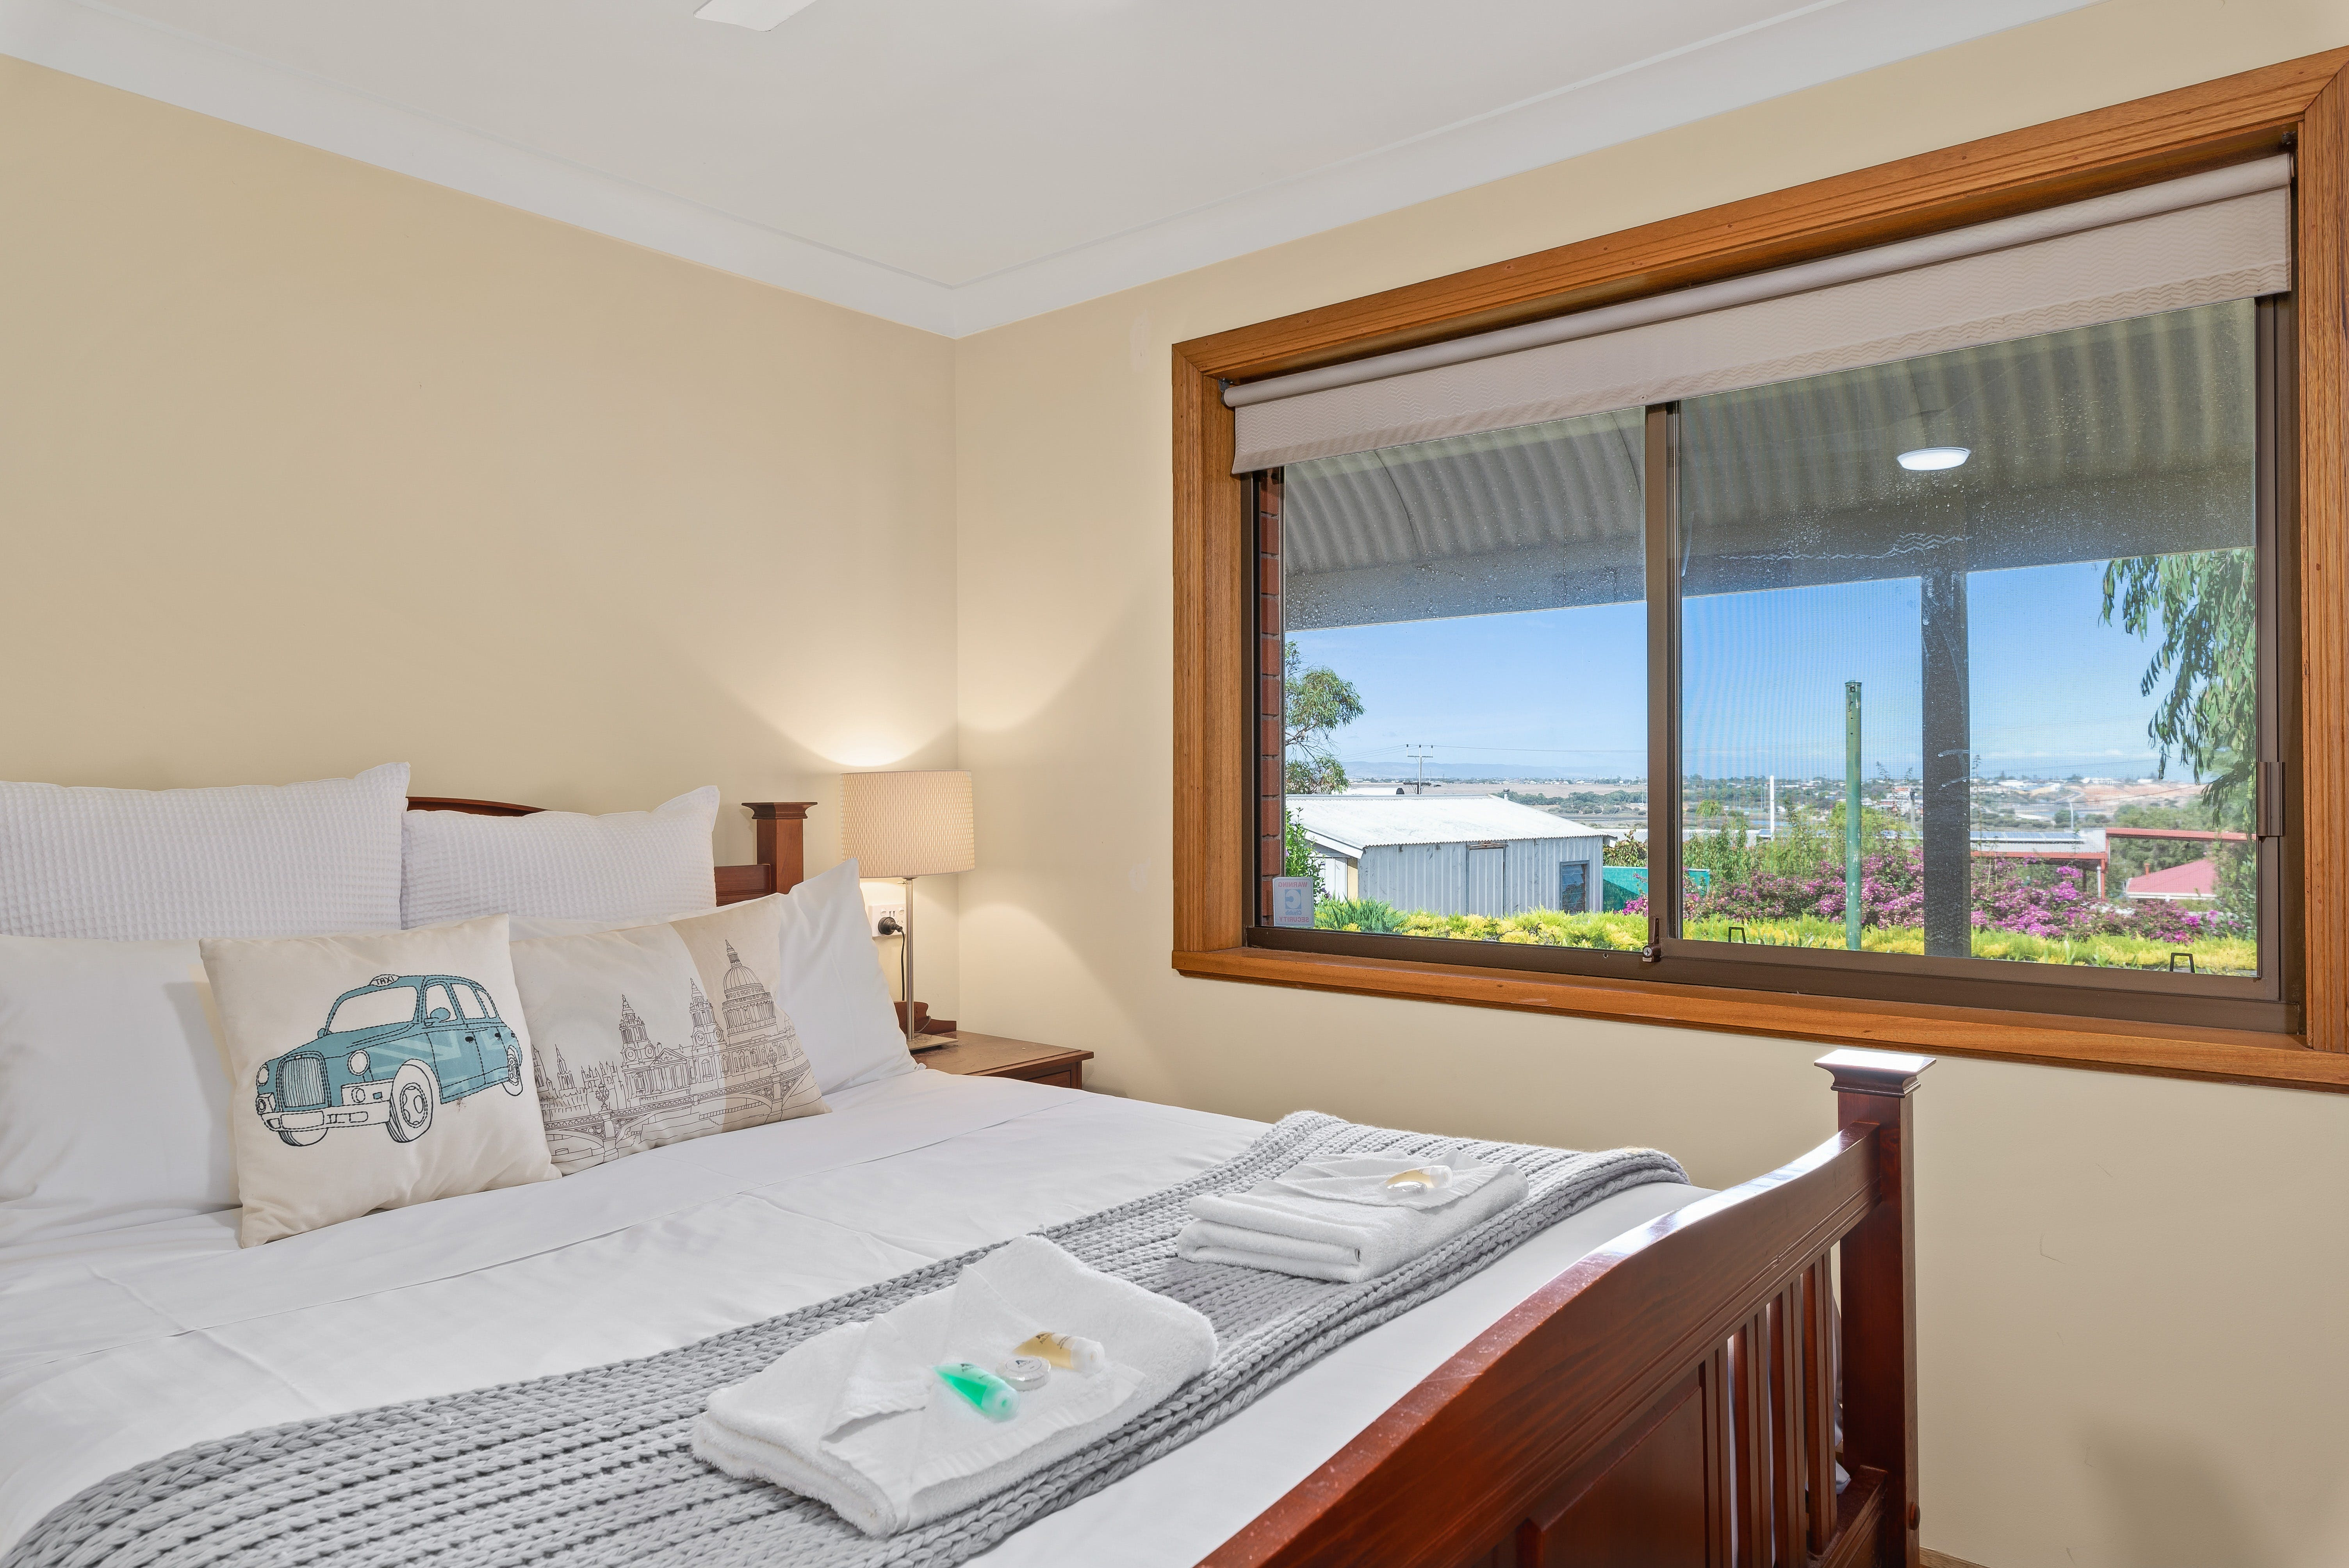 Century21 SouthCoast Reef  Vines Port Noarlunga - Accommodation Find